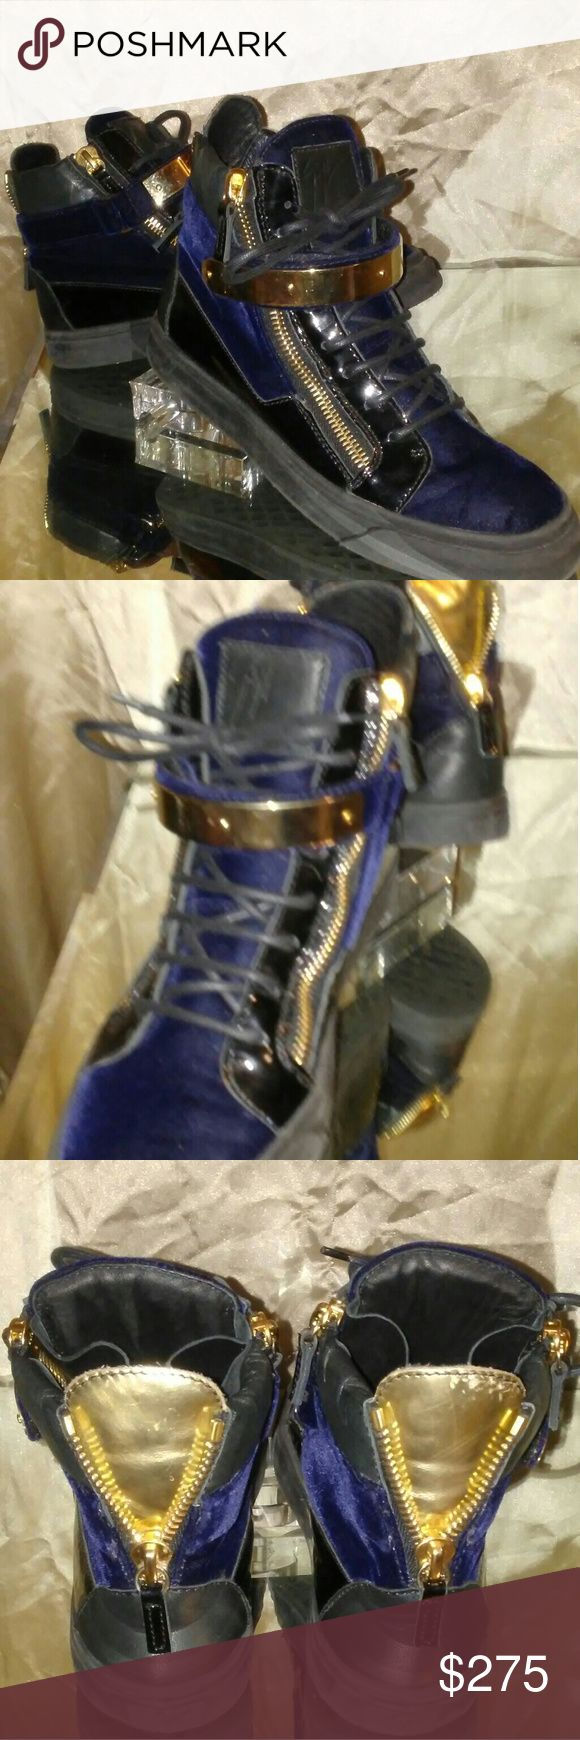 Giuseppe Sneakers Giuseppe Sneakers... sorry pic looks blue. Will retake new pic asap Giuseppe Zanotti Shoes